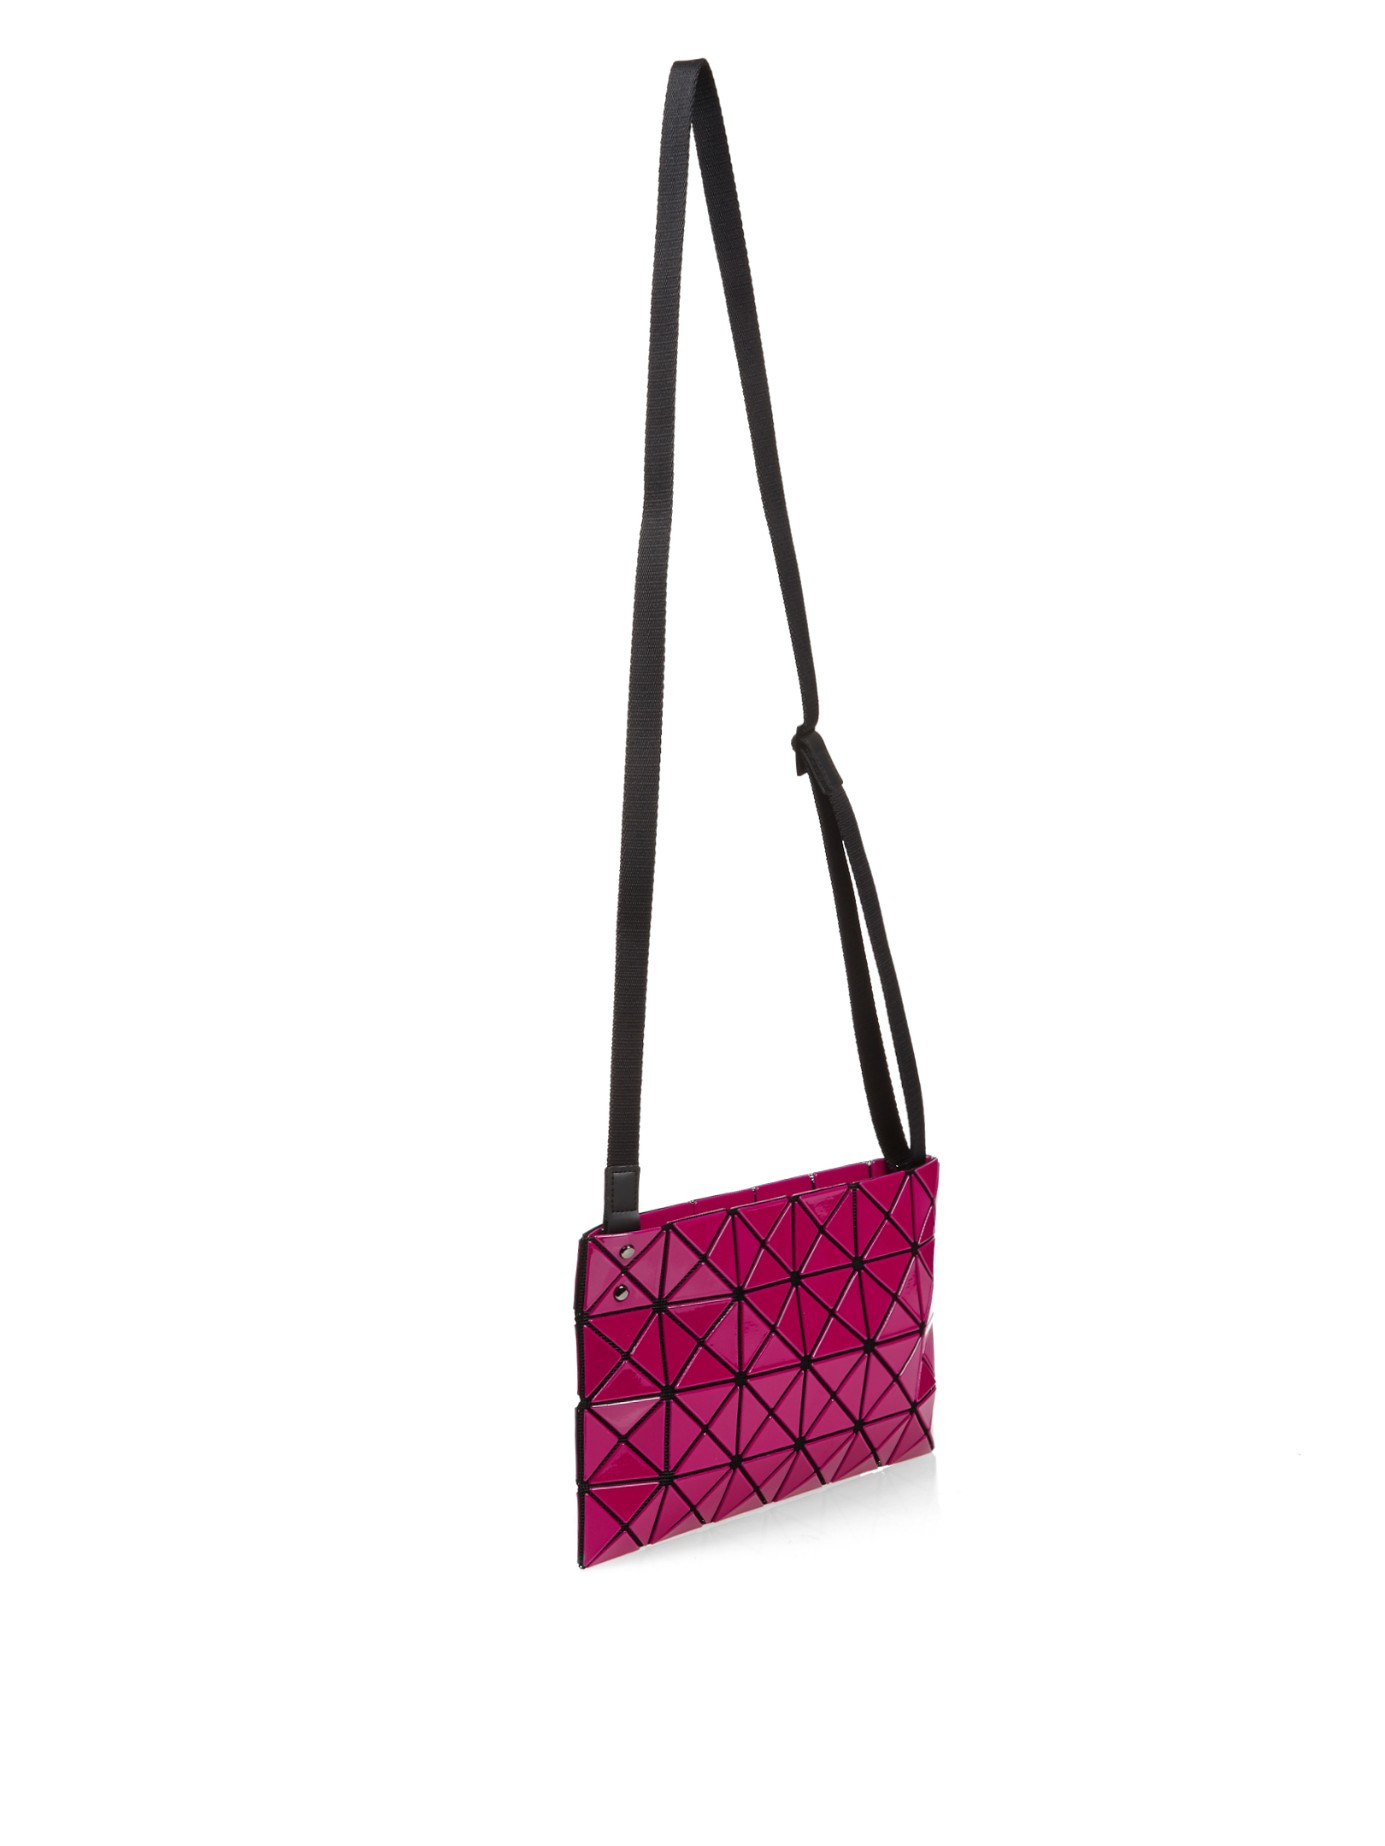 ... Bao Bao Issey Miyake Lucent Cross-body Bag in Pink - Lyst competitive  price cb92b ... 48c1e60ac630b